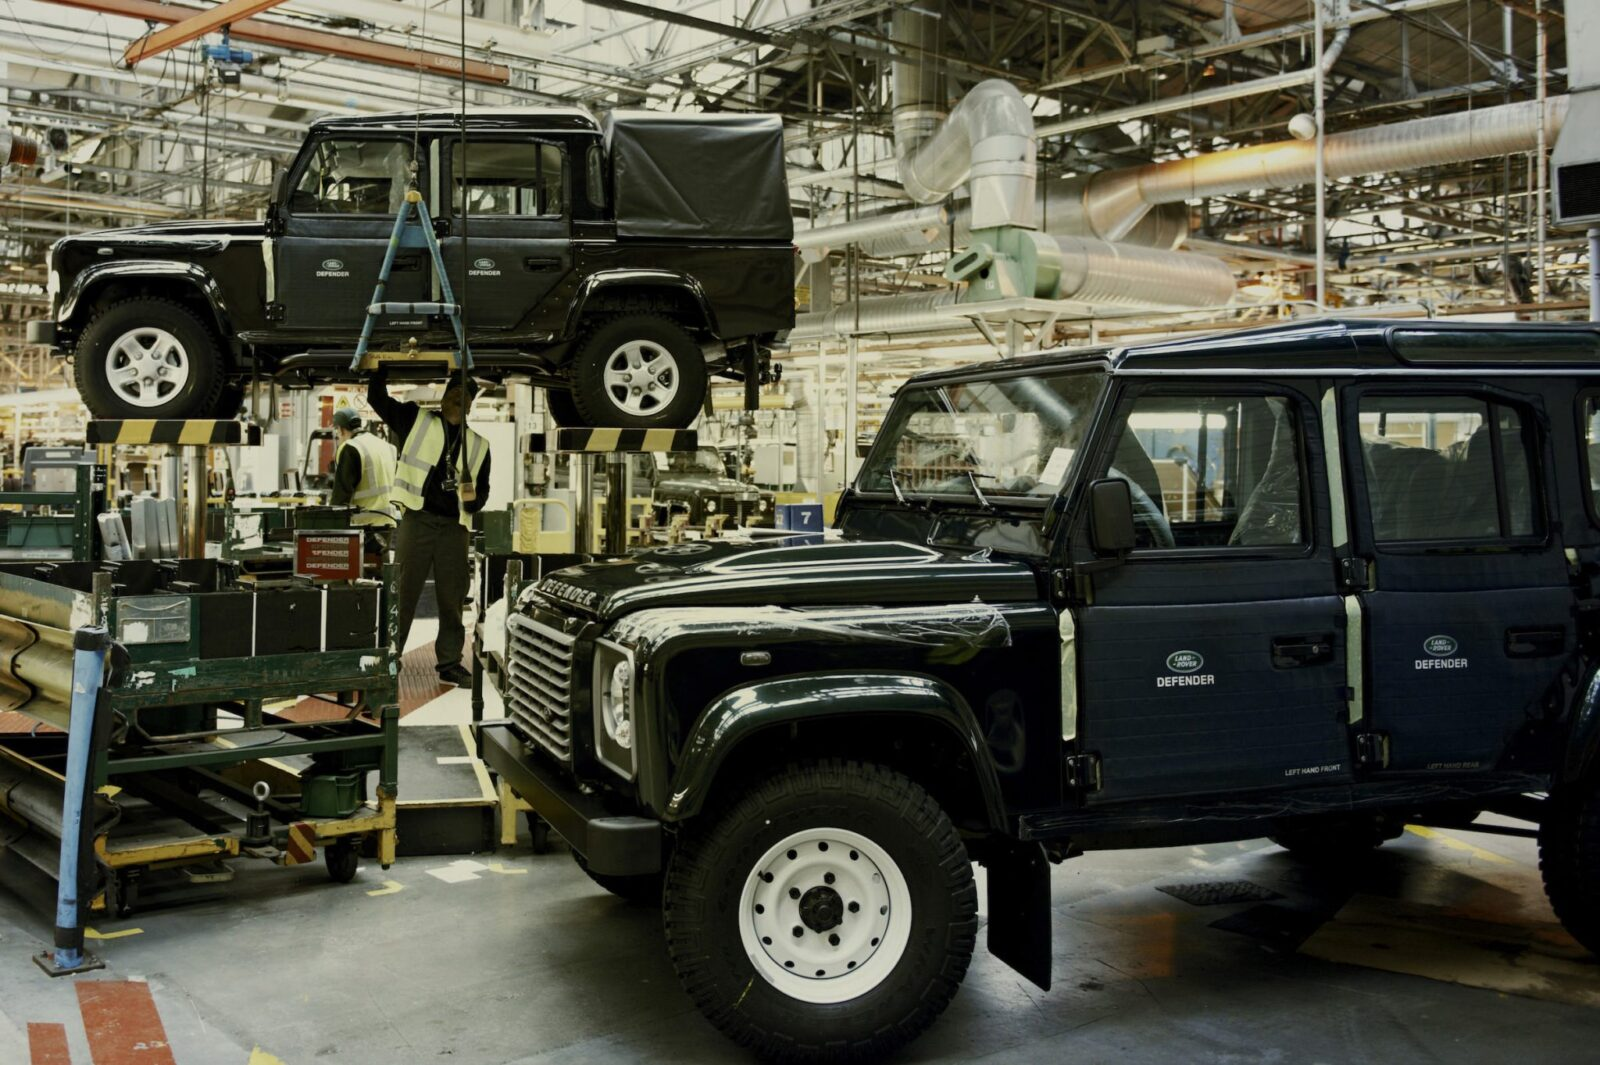 Land Rover Factory 12 1600x1065 - A Last Look At The Land Rover Defender Production Line